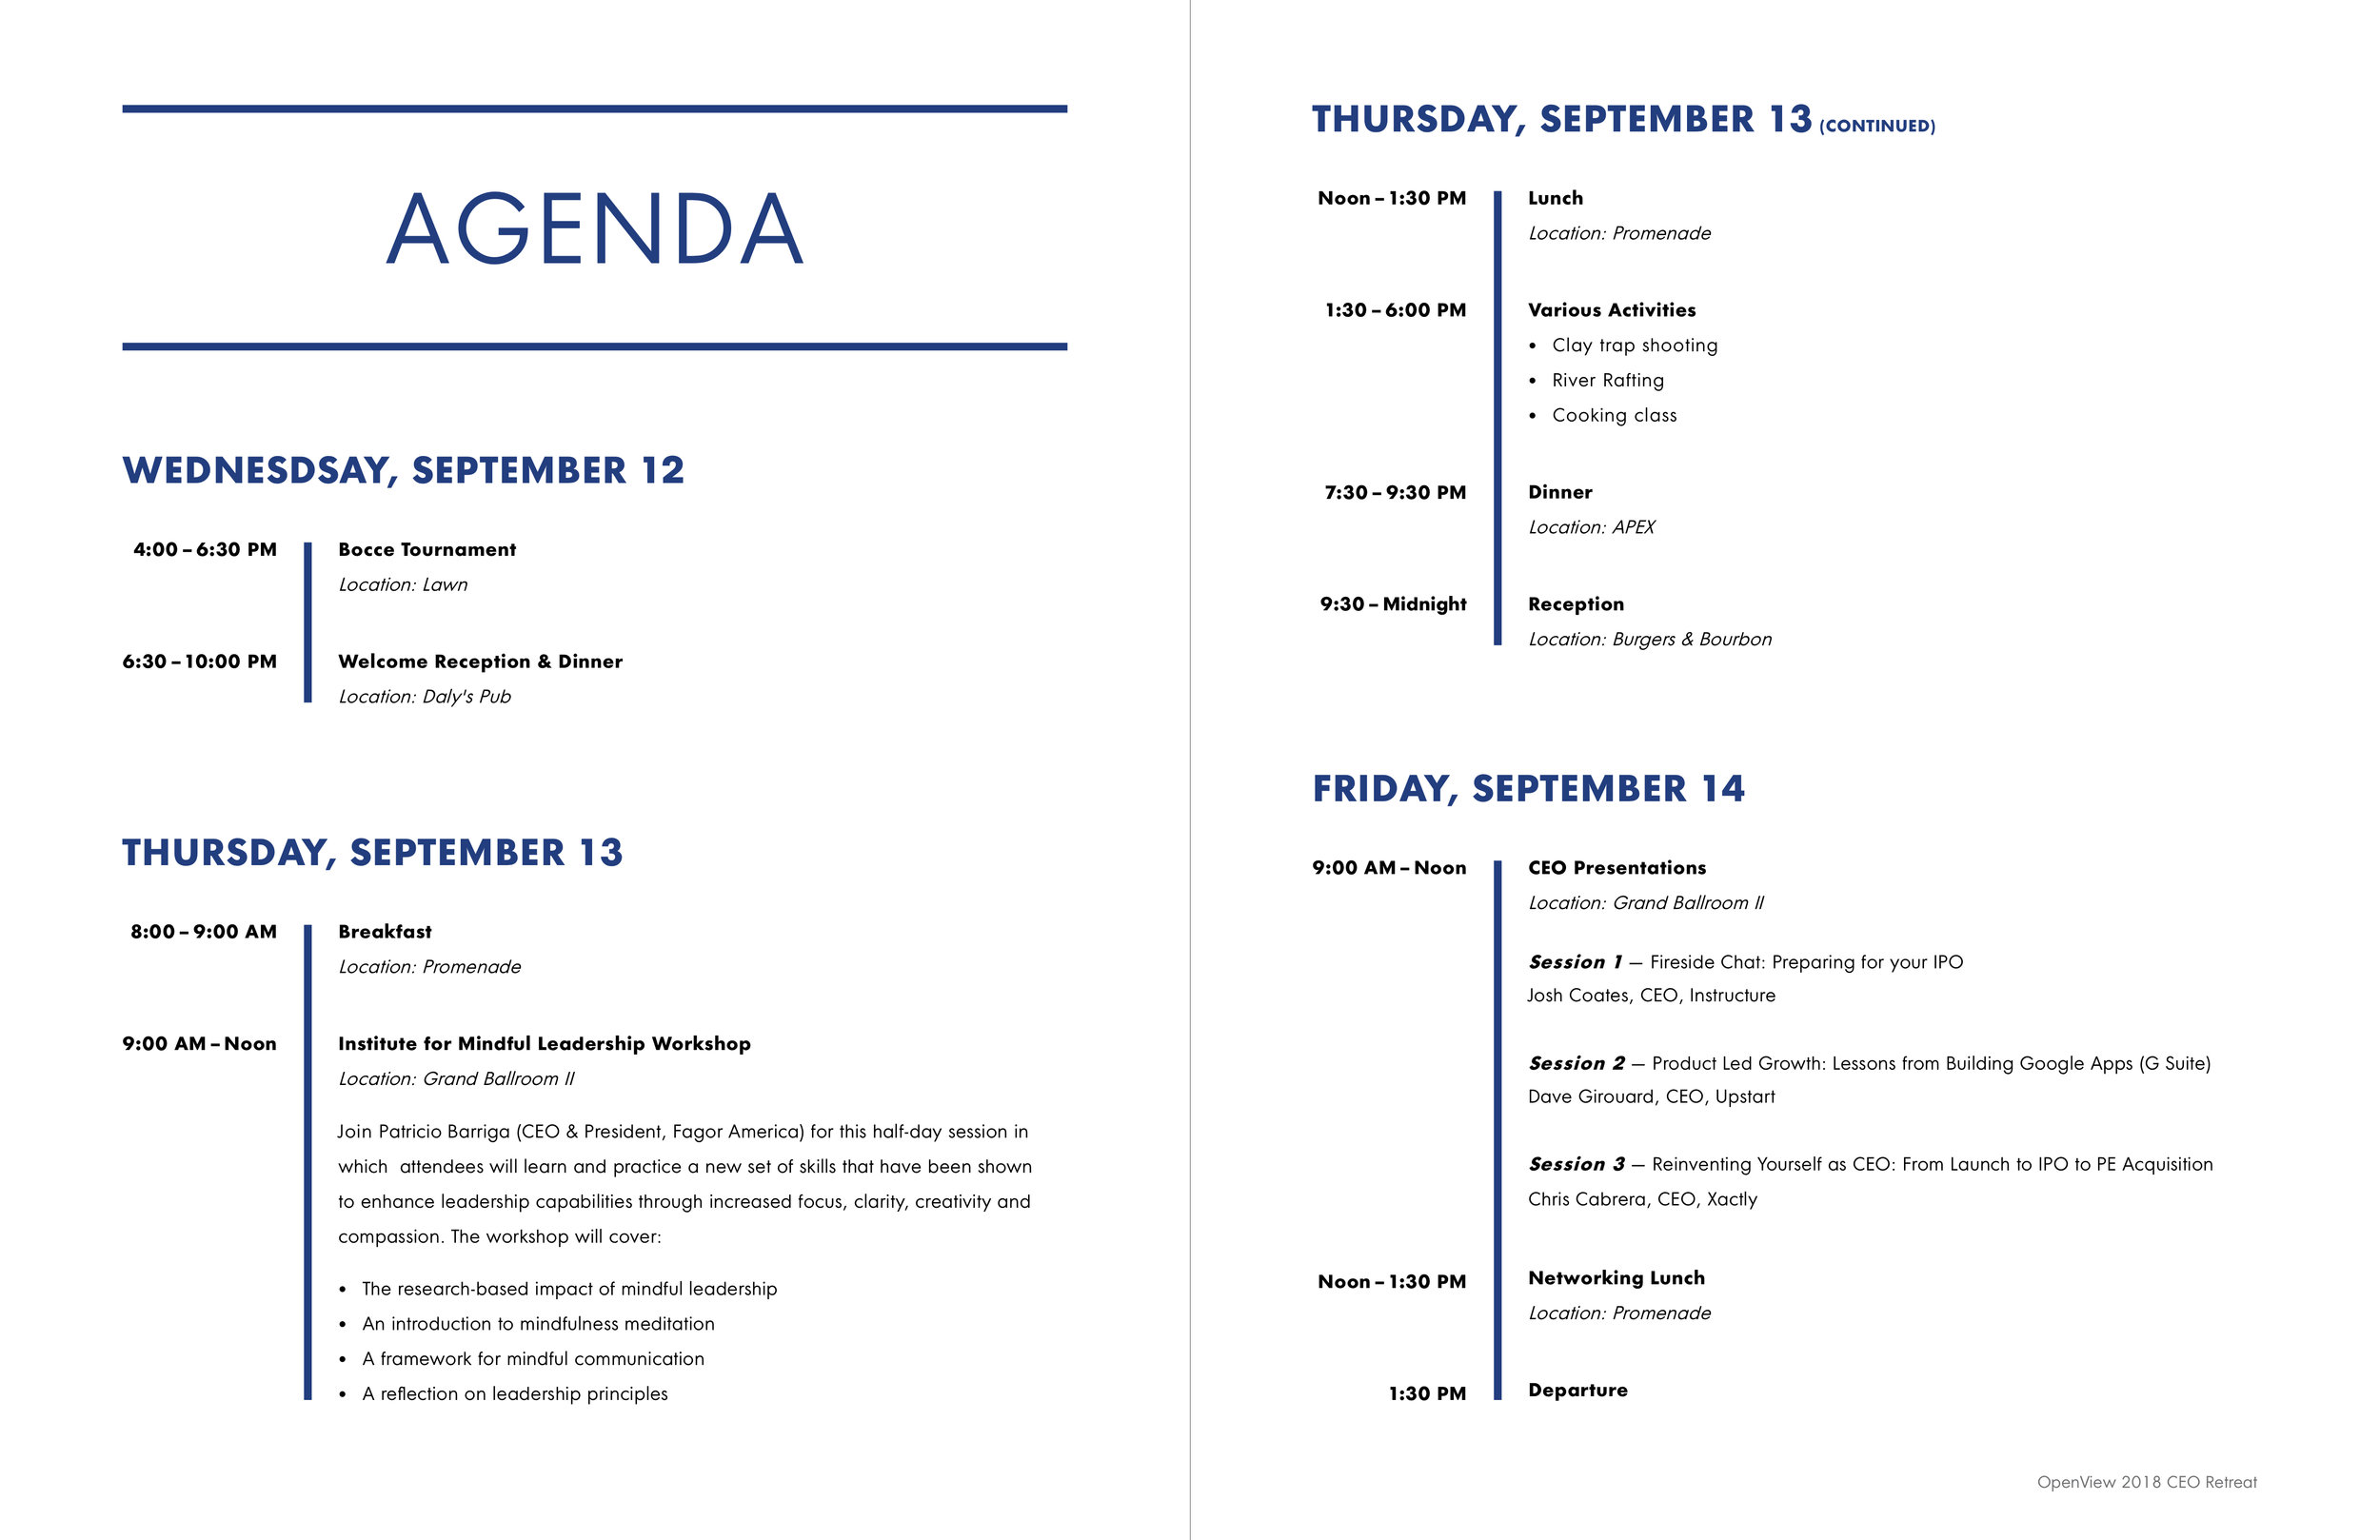 CEO Retreat Book Agenda.jpg